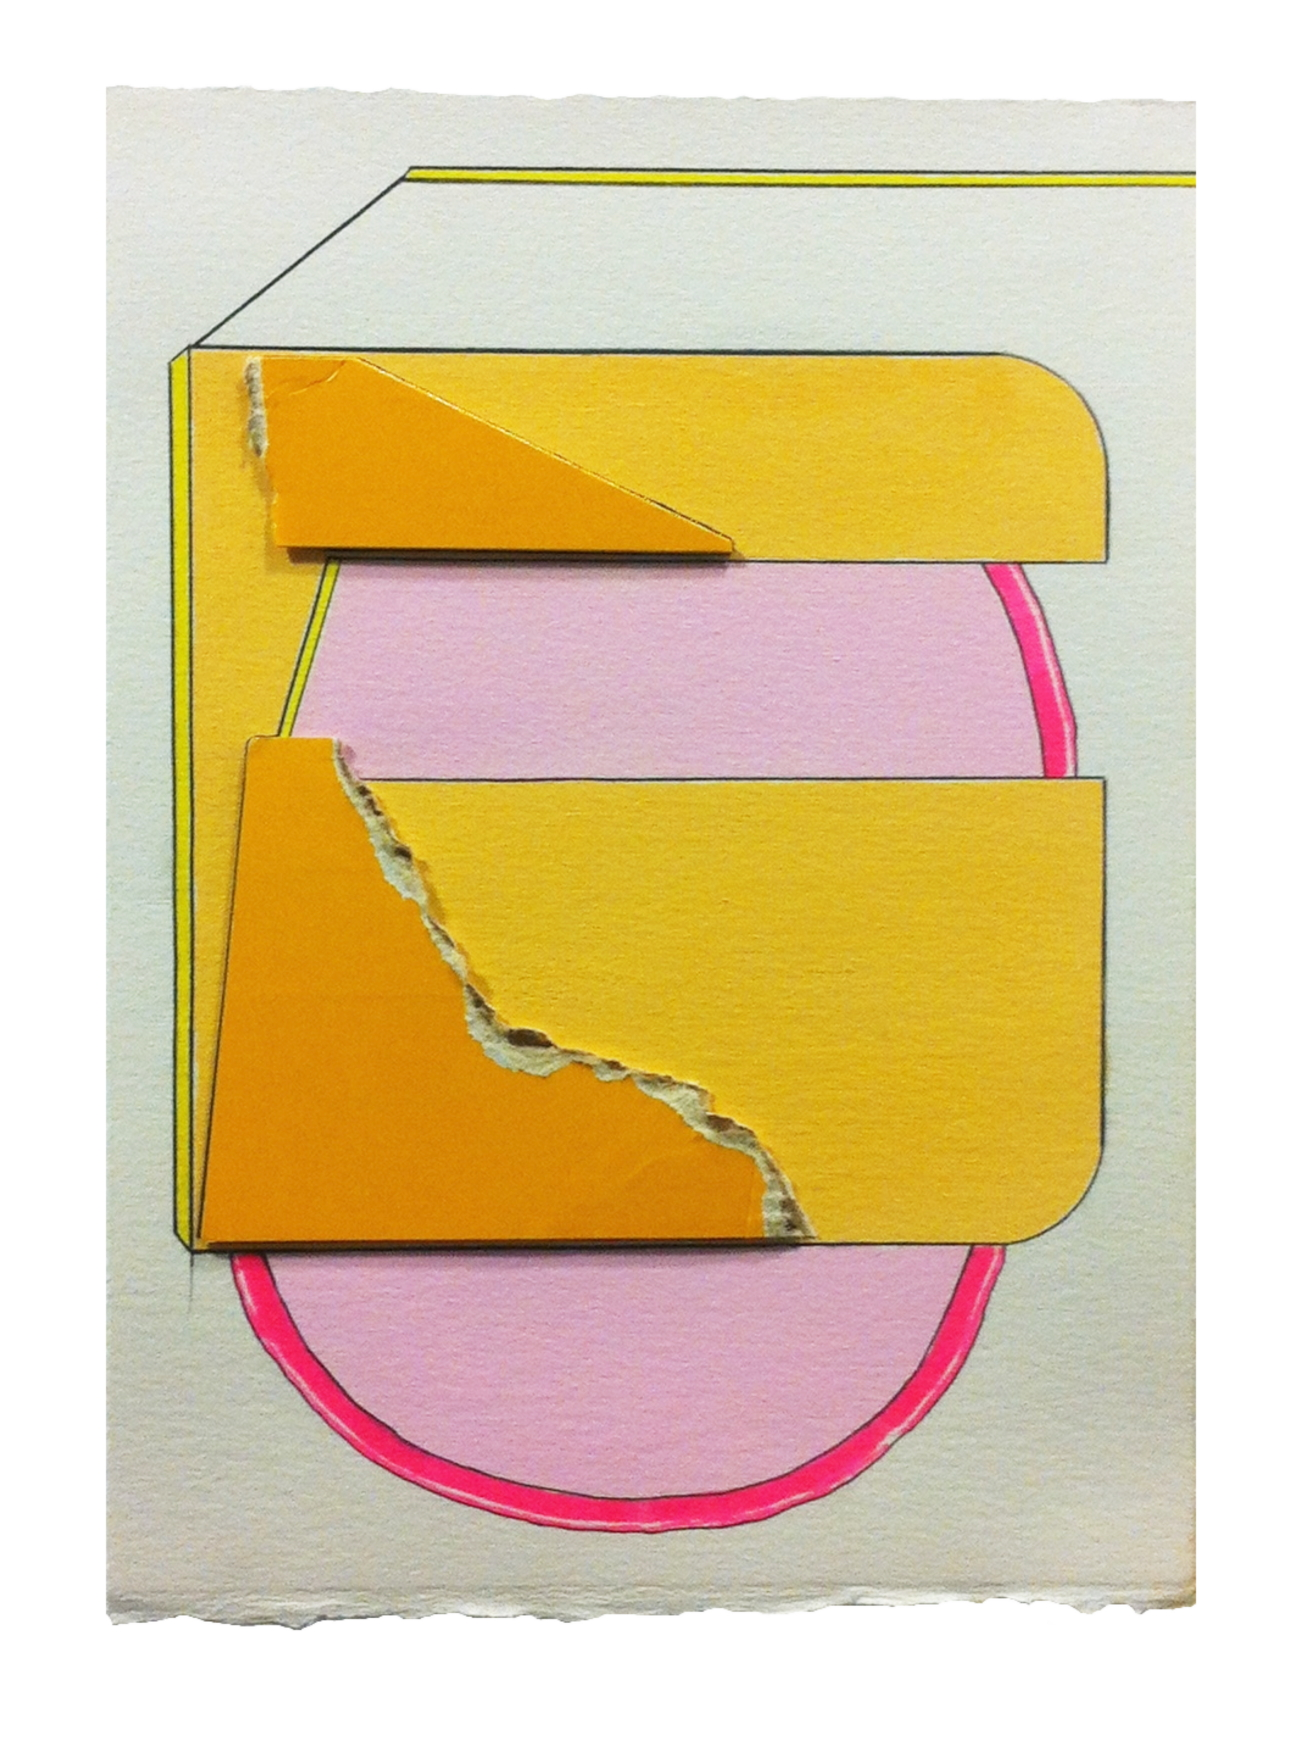 Plain  , 2015  gouache, pencil, marker, collage on paper  10.25 x 7.25 inches